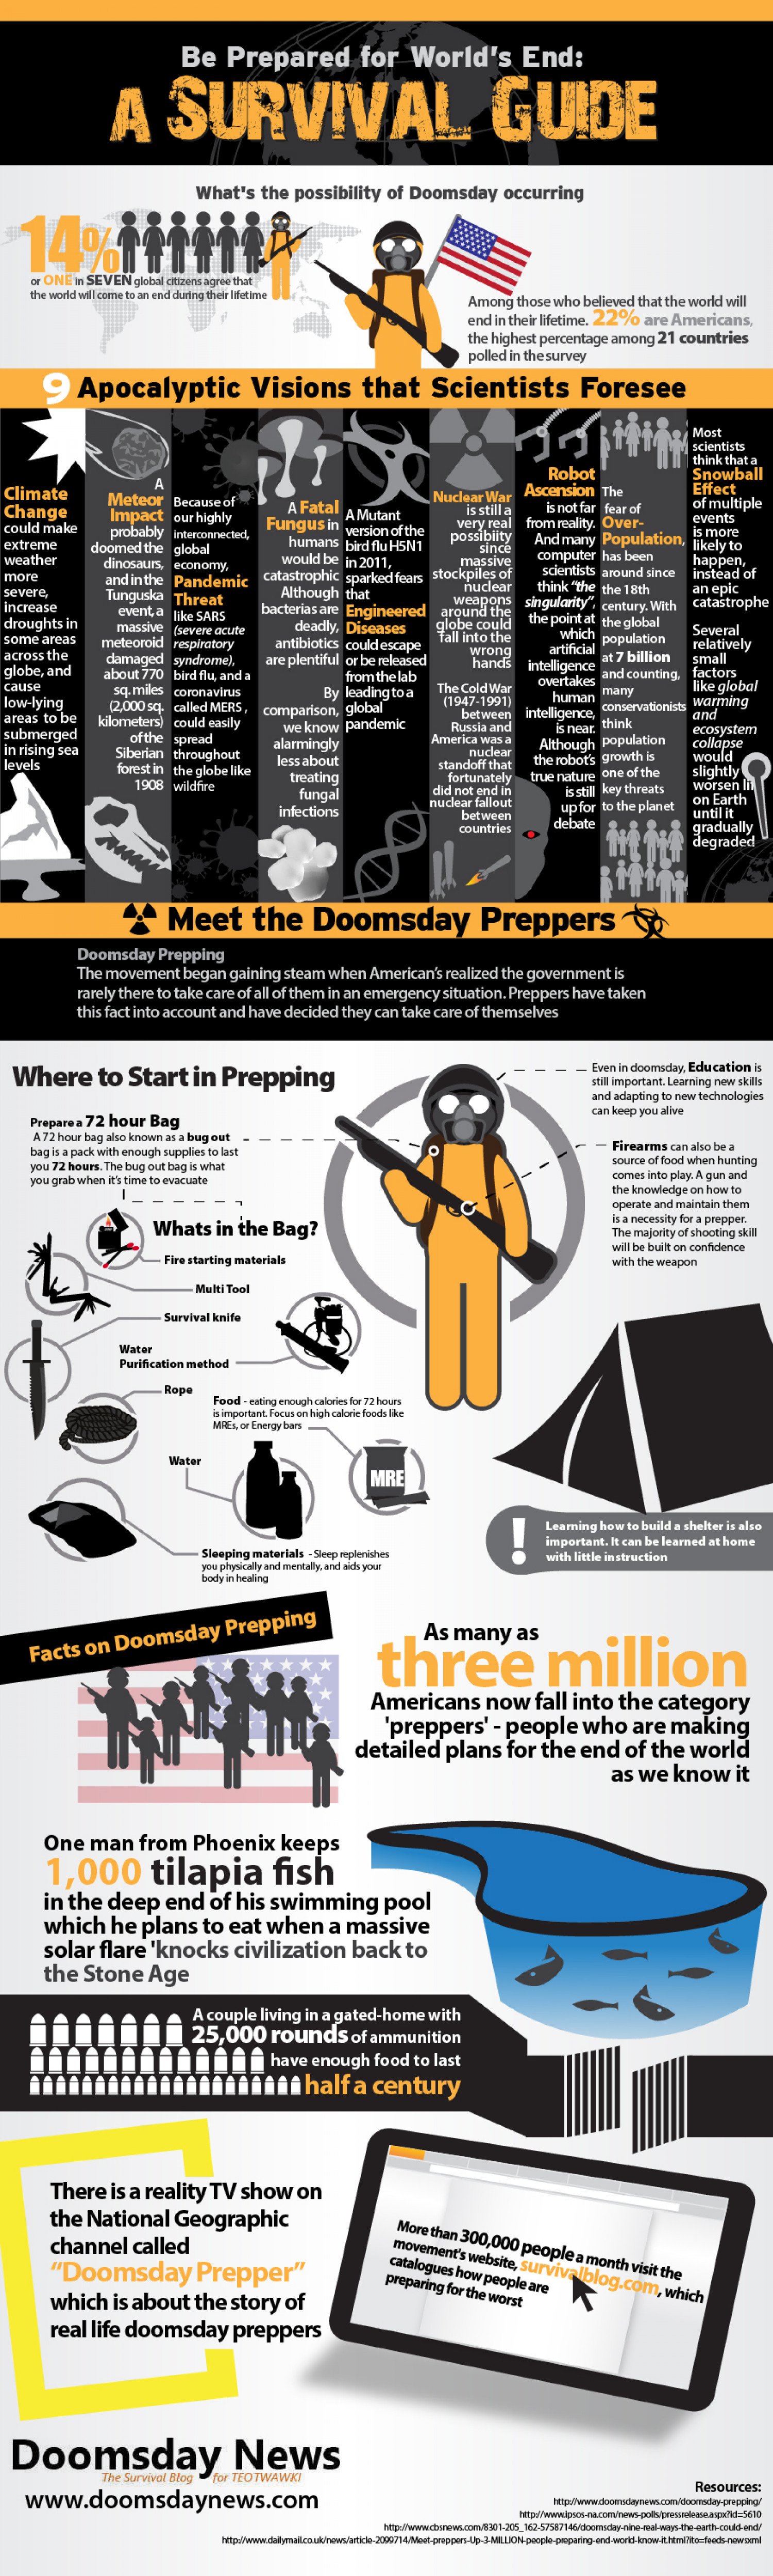 Be Prepared for World's End: A Survival Guide Infographic